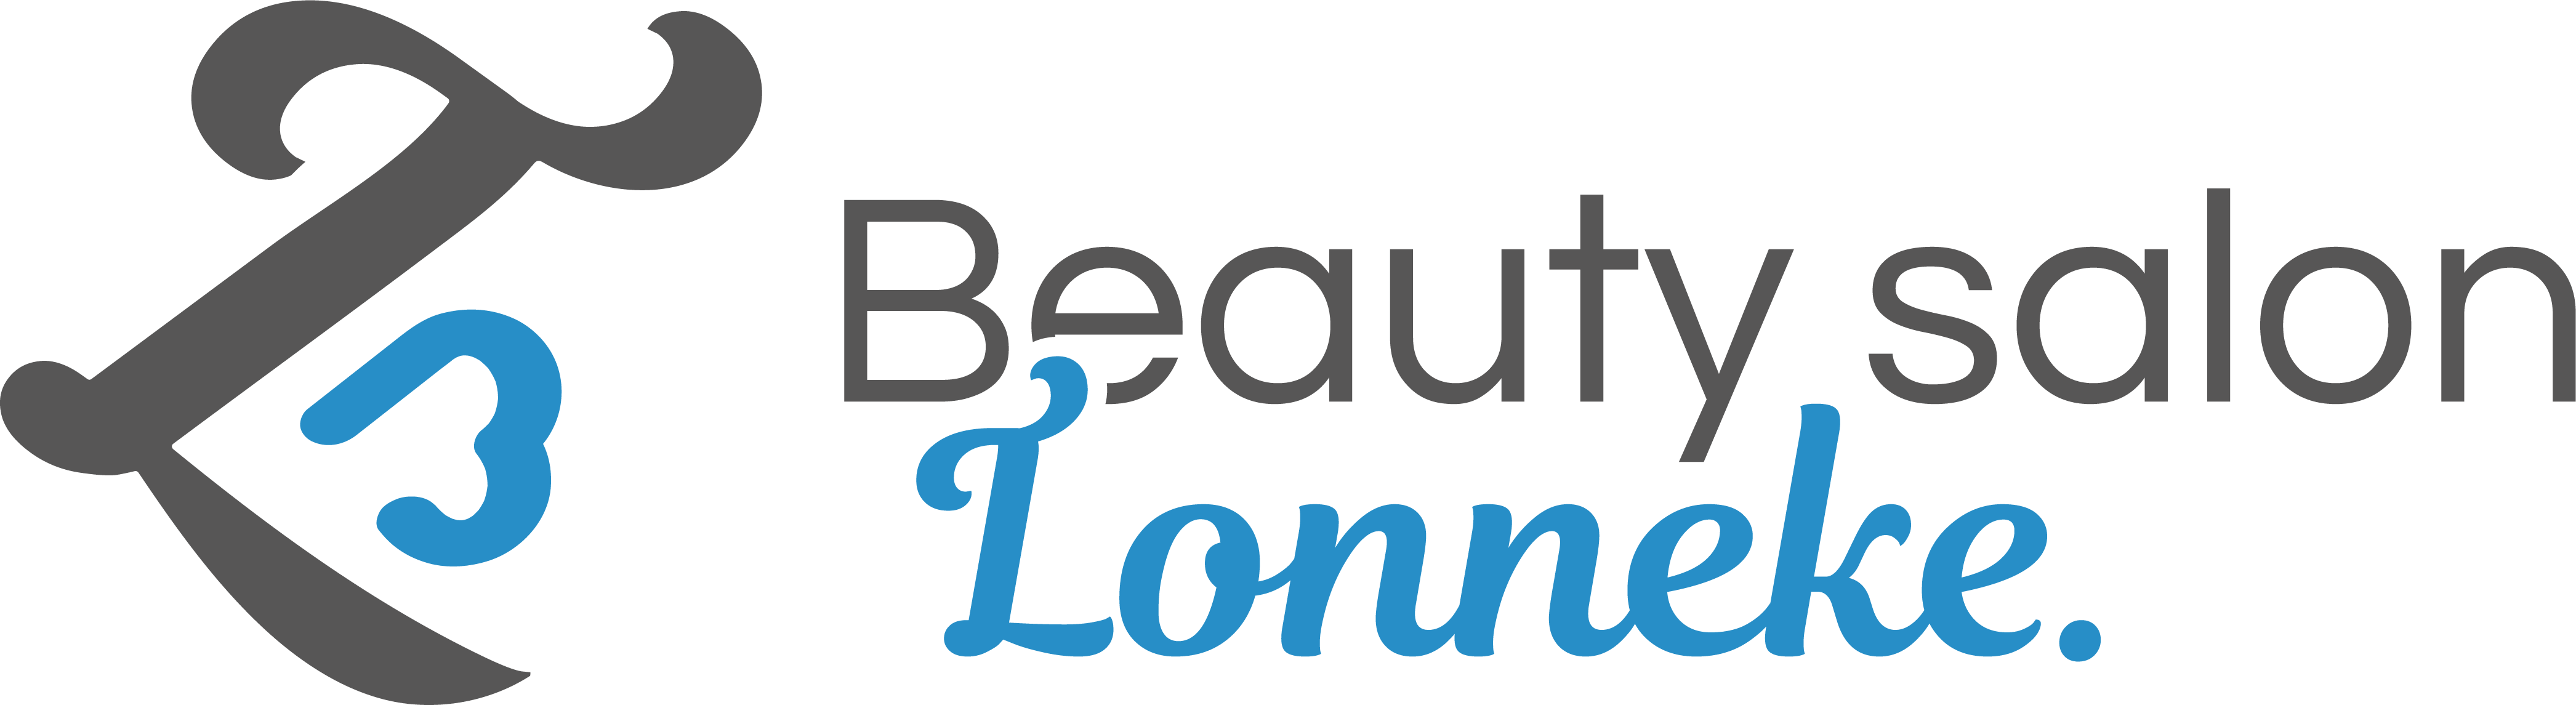 Beautysalon Lonneke